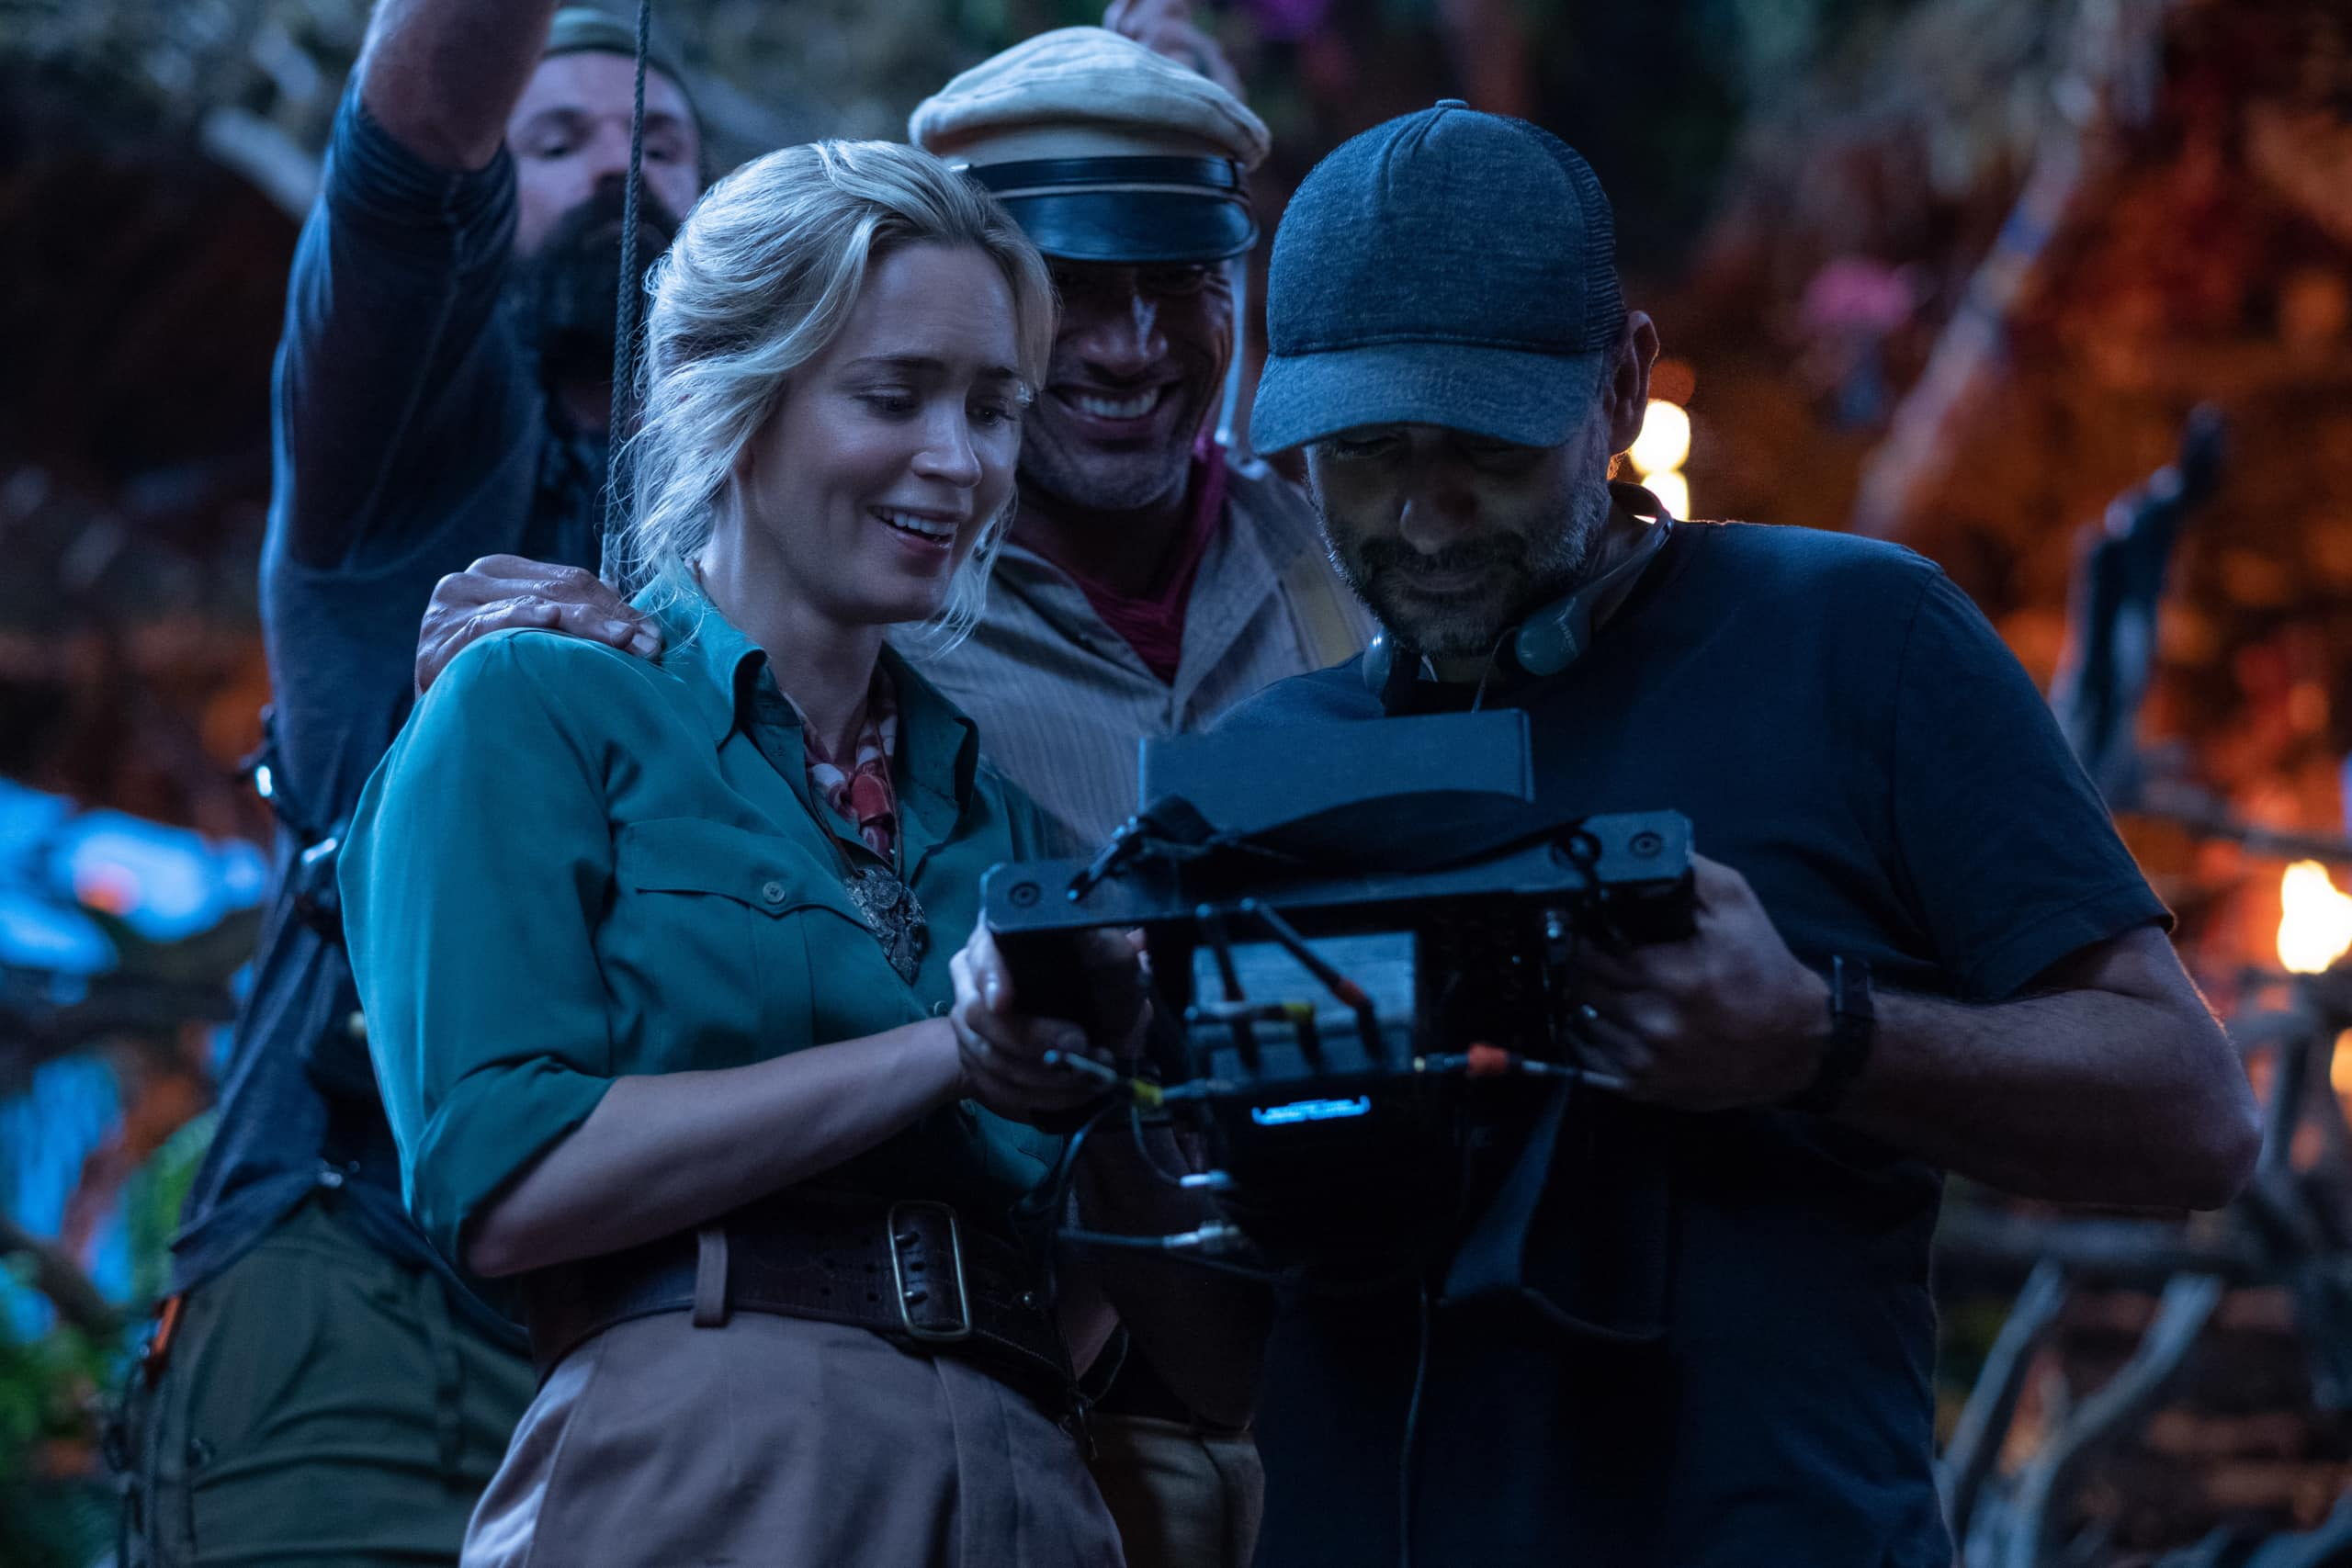 interview with Dwayne Johnson and Emily Blunt